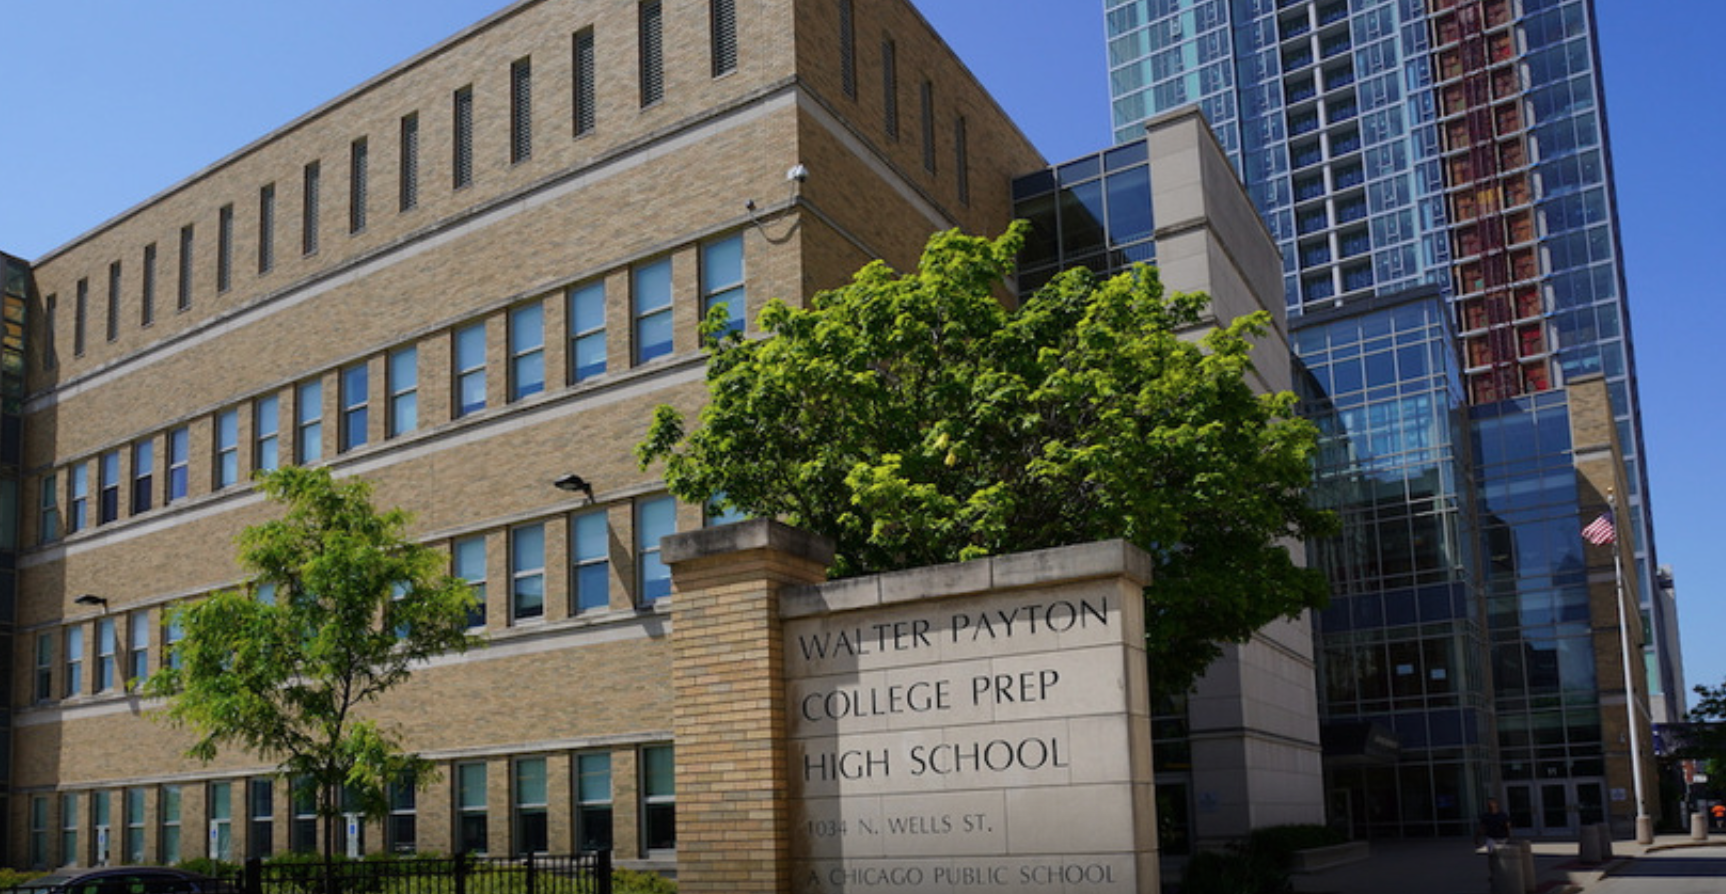 Outside Photograph of Walter Payton College Prep High School Building to promote event